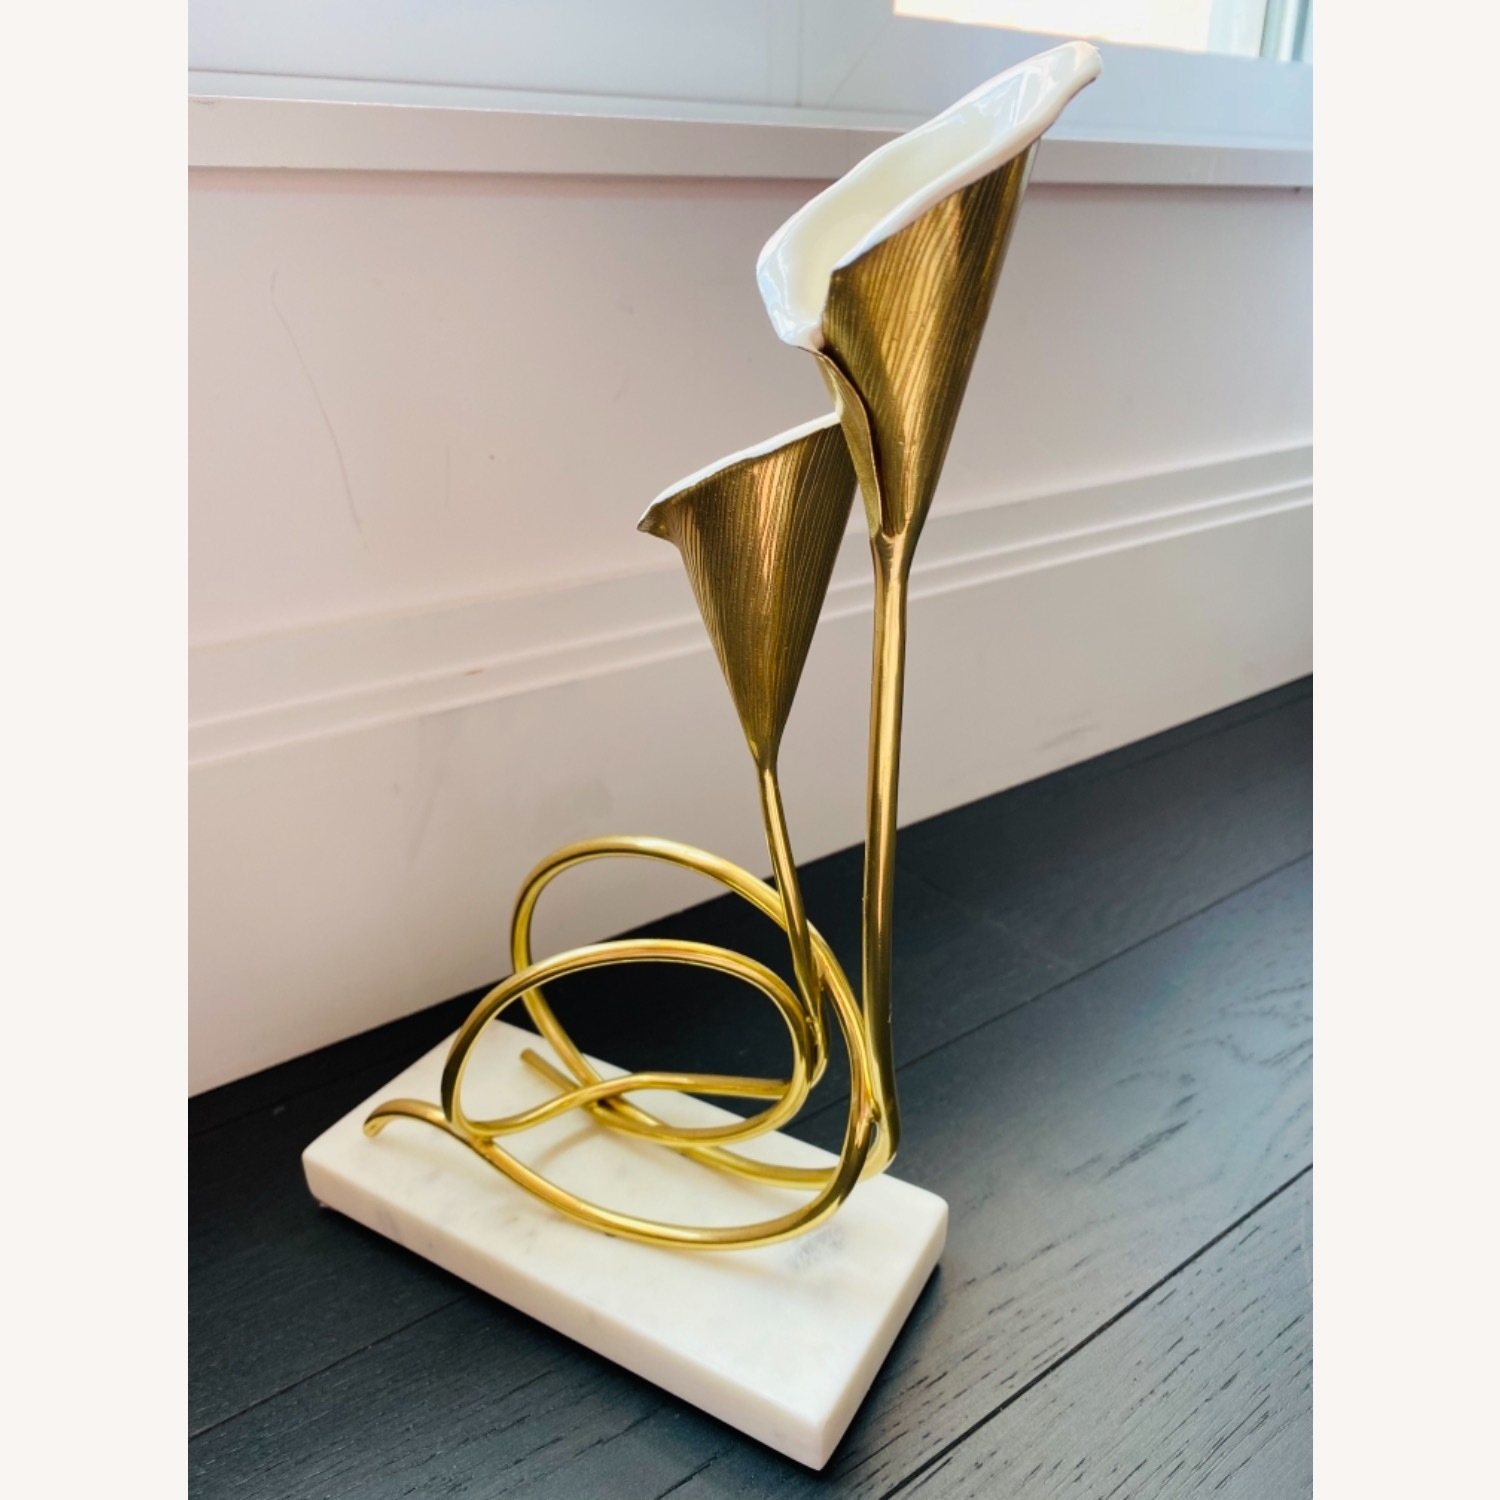 Michael Aram Calla Lilly candle holder - image-7